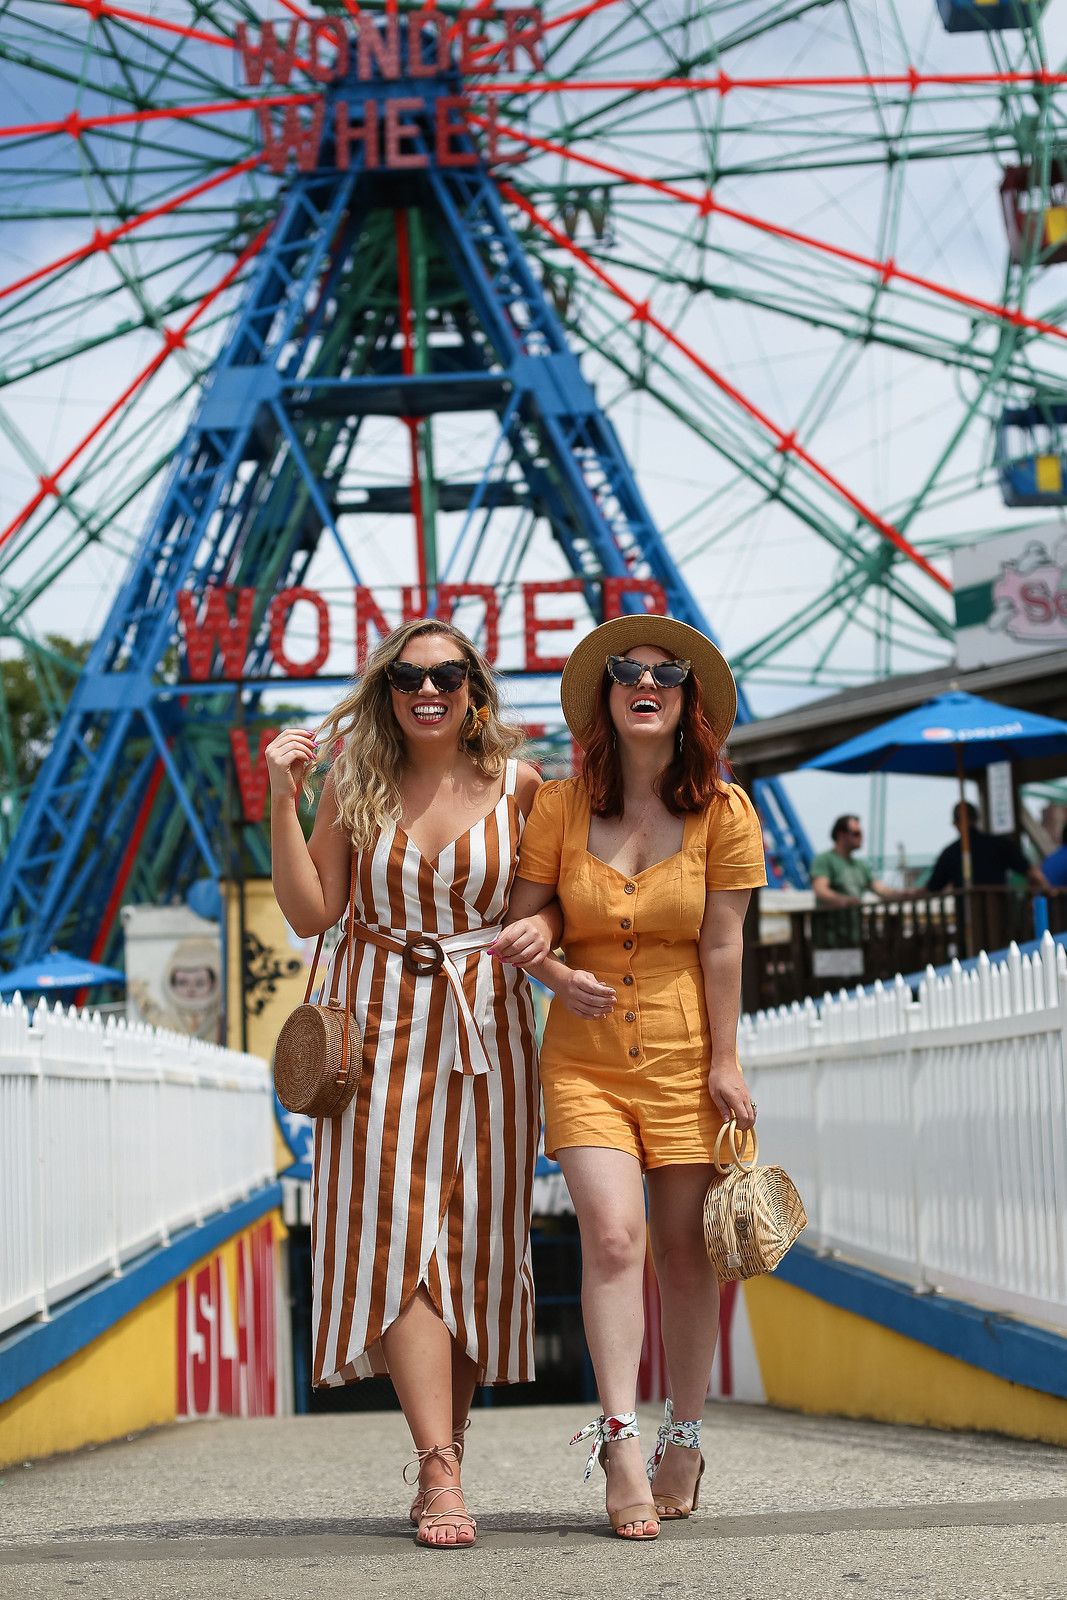 Vintage Inspired Summer Outfits | Coney Island Brooklyn New York | Coney Island Photoshoot | Wonder Wheel | Amusement Park Photo Ideas | Retro Summer Clothes